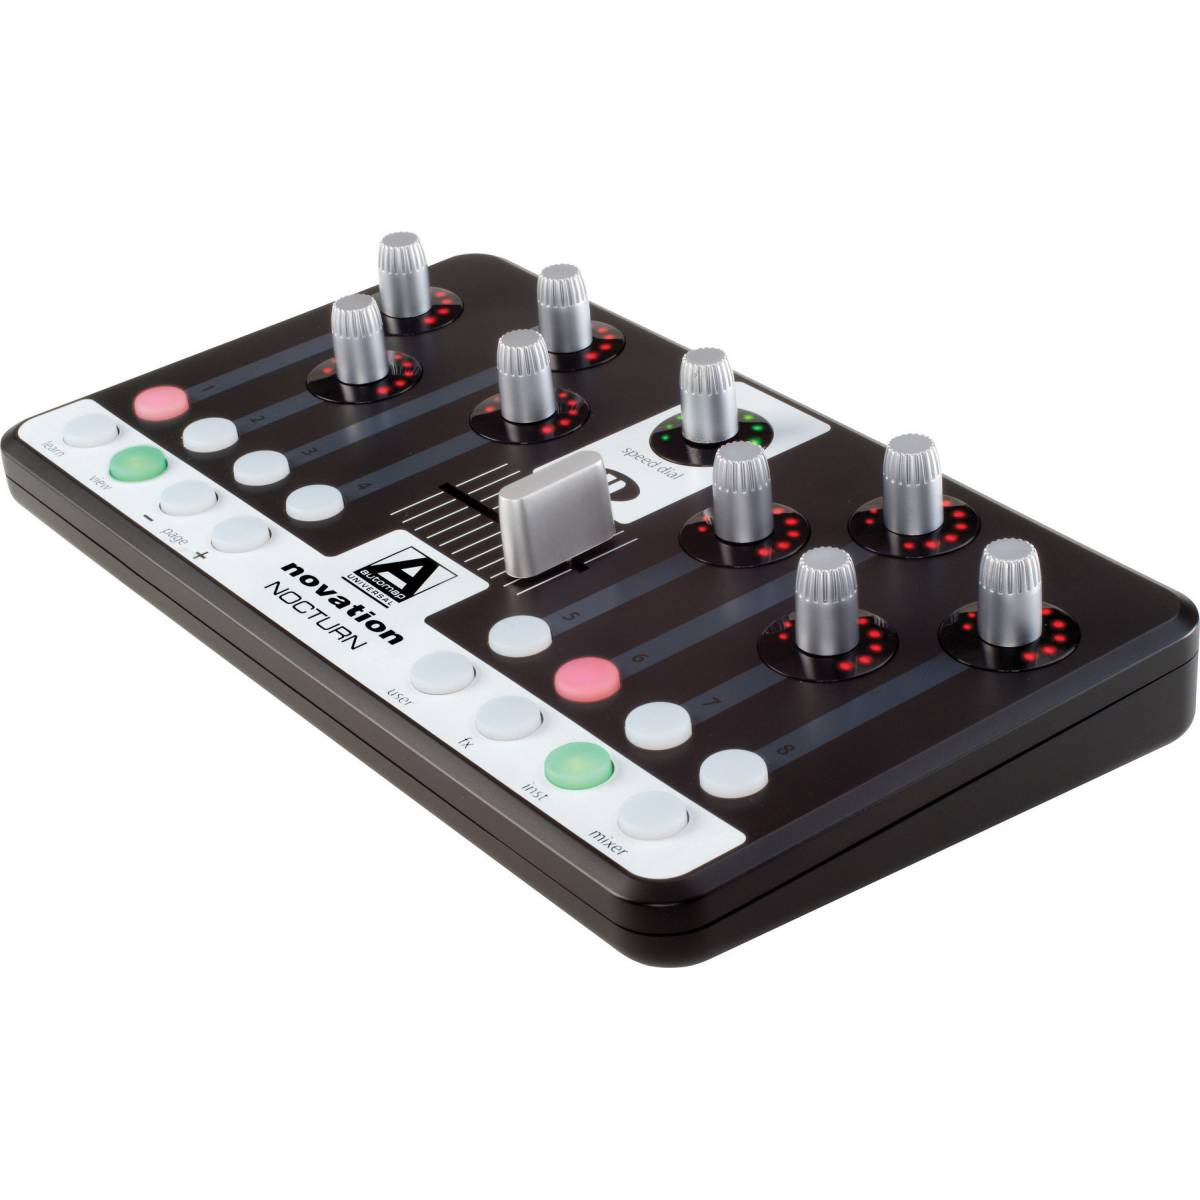 novation nocturn midi controller. Black Bedroom Furniture Sets. Home Design Ideas